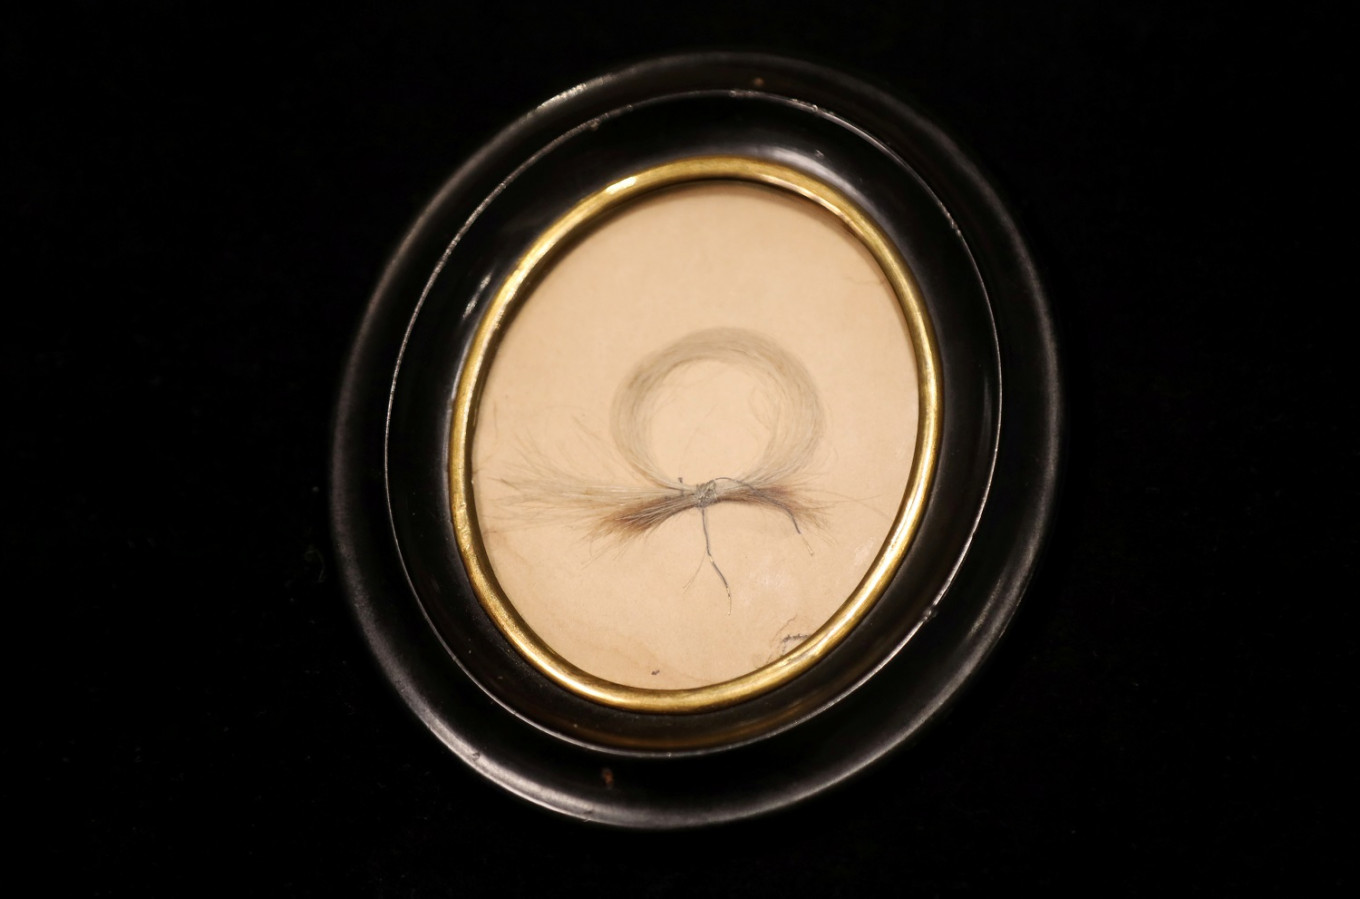 Sotheby's to auction 'substantial' lock of Beethoven's hair